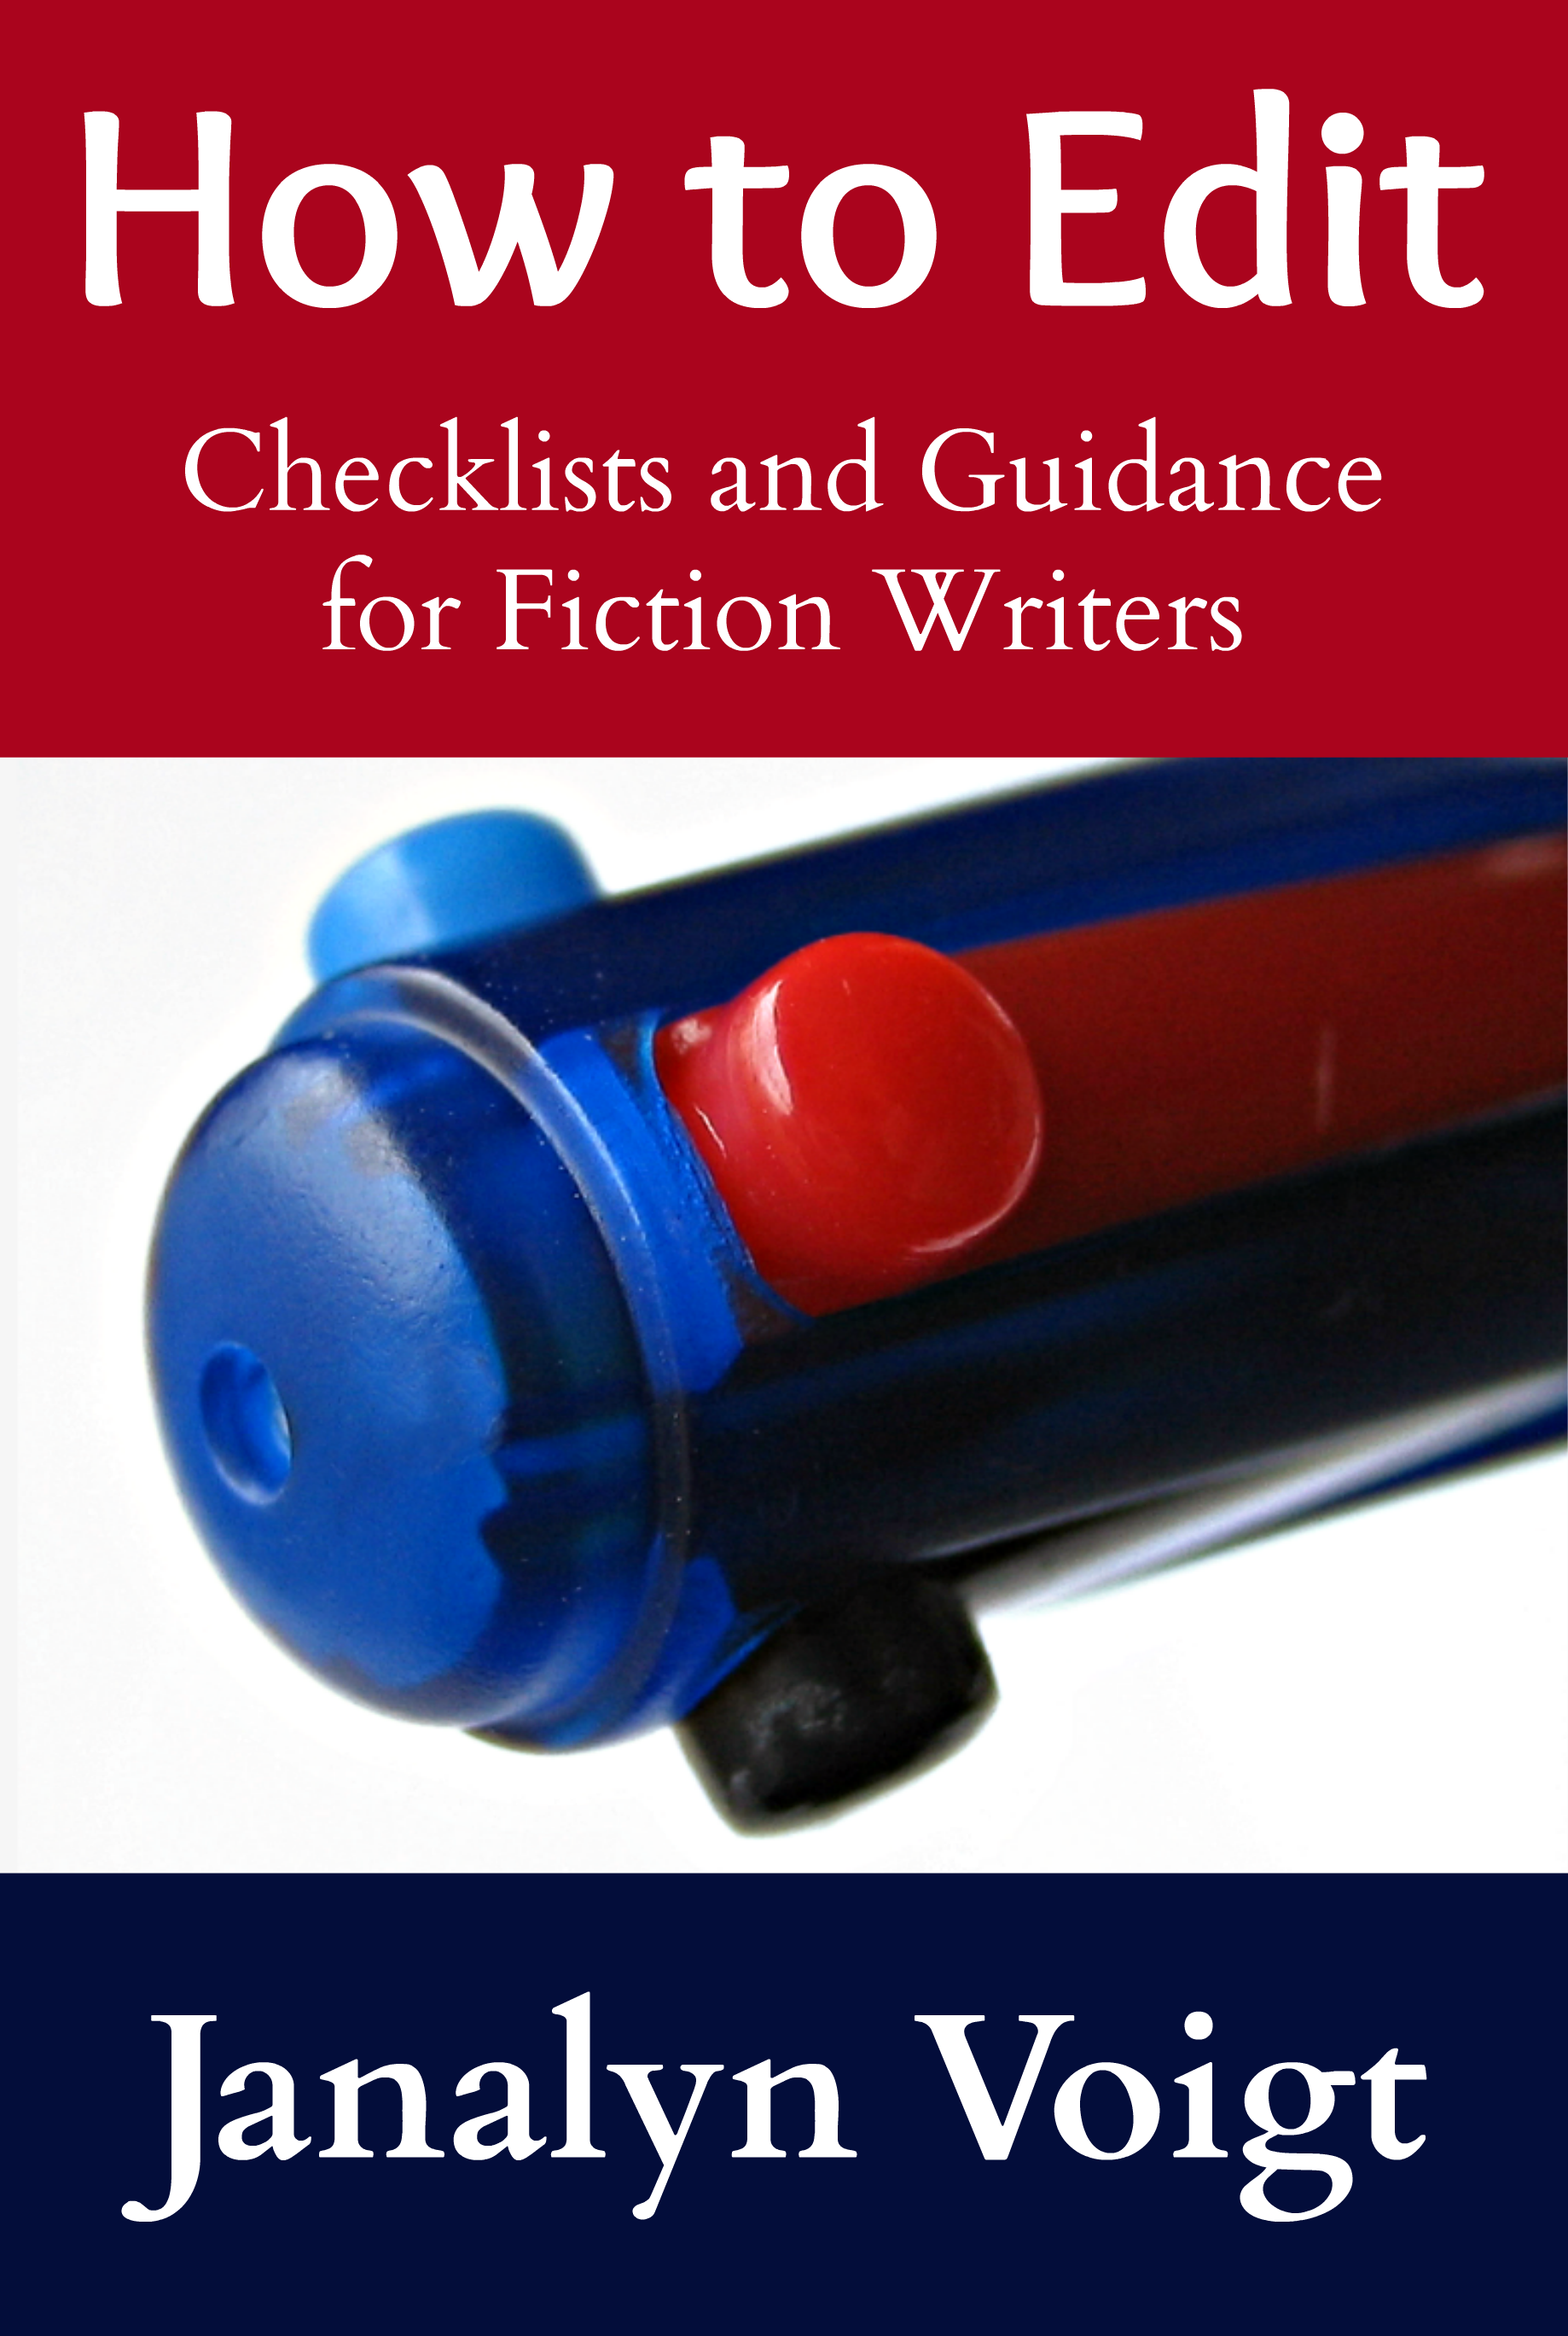 Grab Your Free PDF Copy of How to Edit: Checklists and Guidance for Fiction Writers